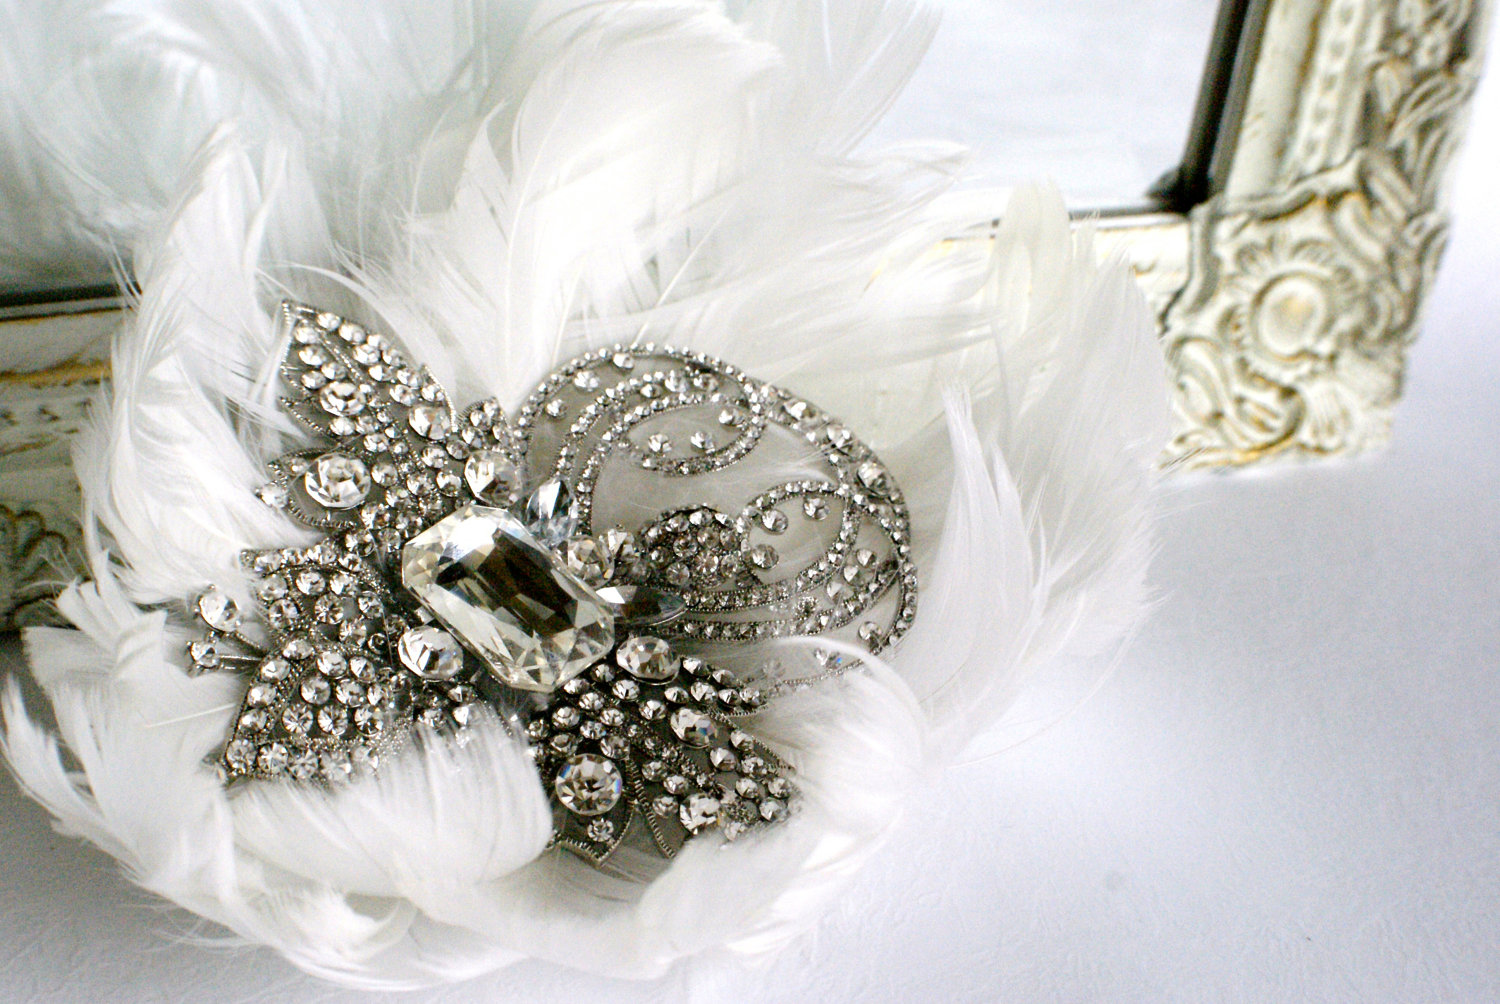 Bejeweled bride wedding accessories feather hair comb for Where to buy wedding accessories